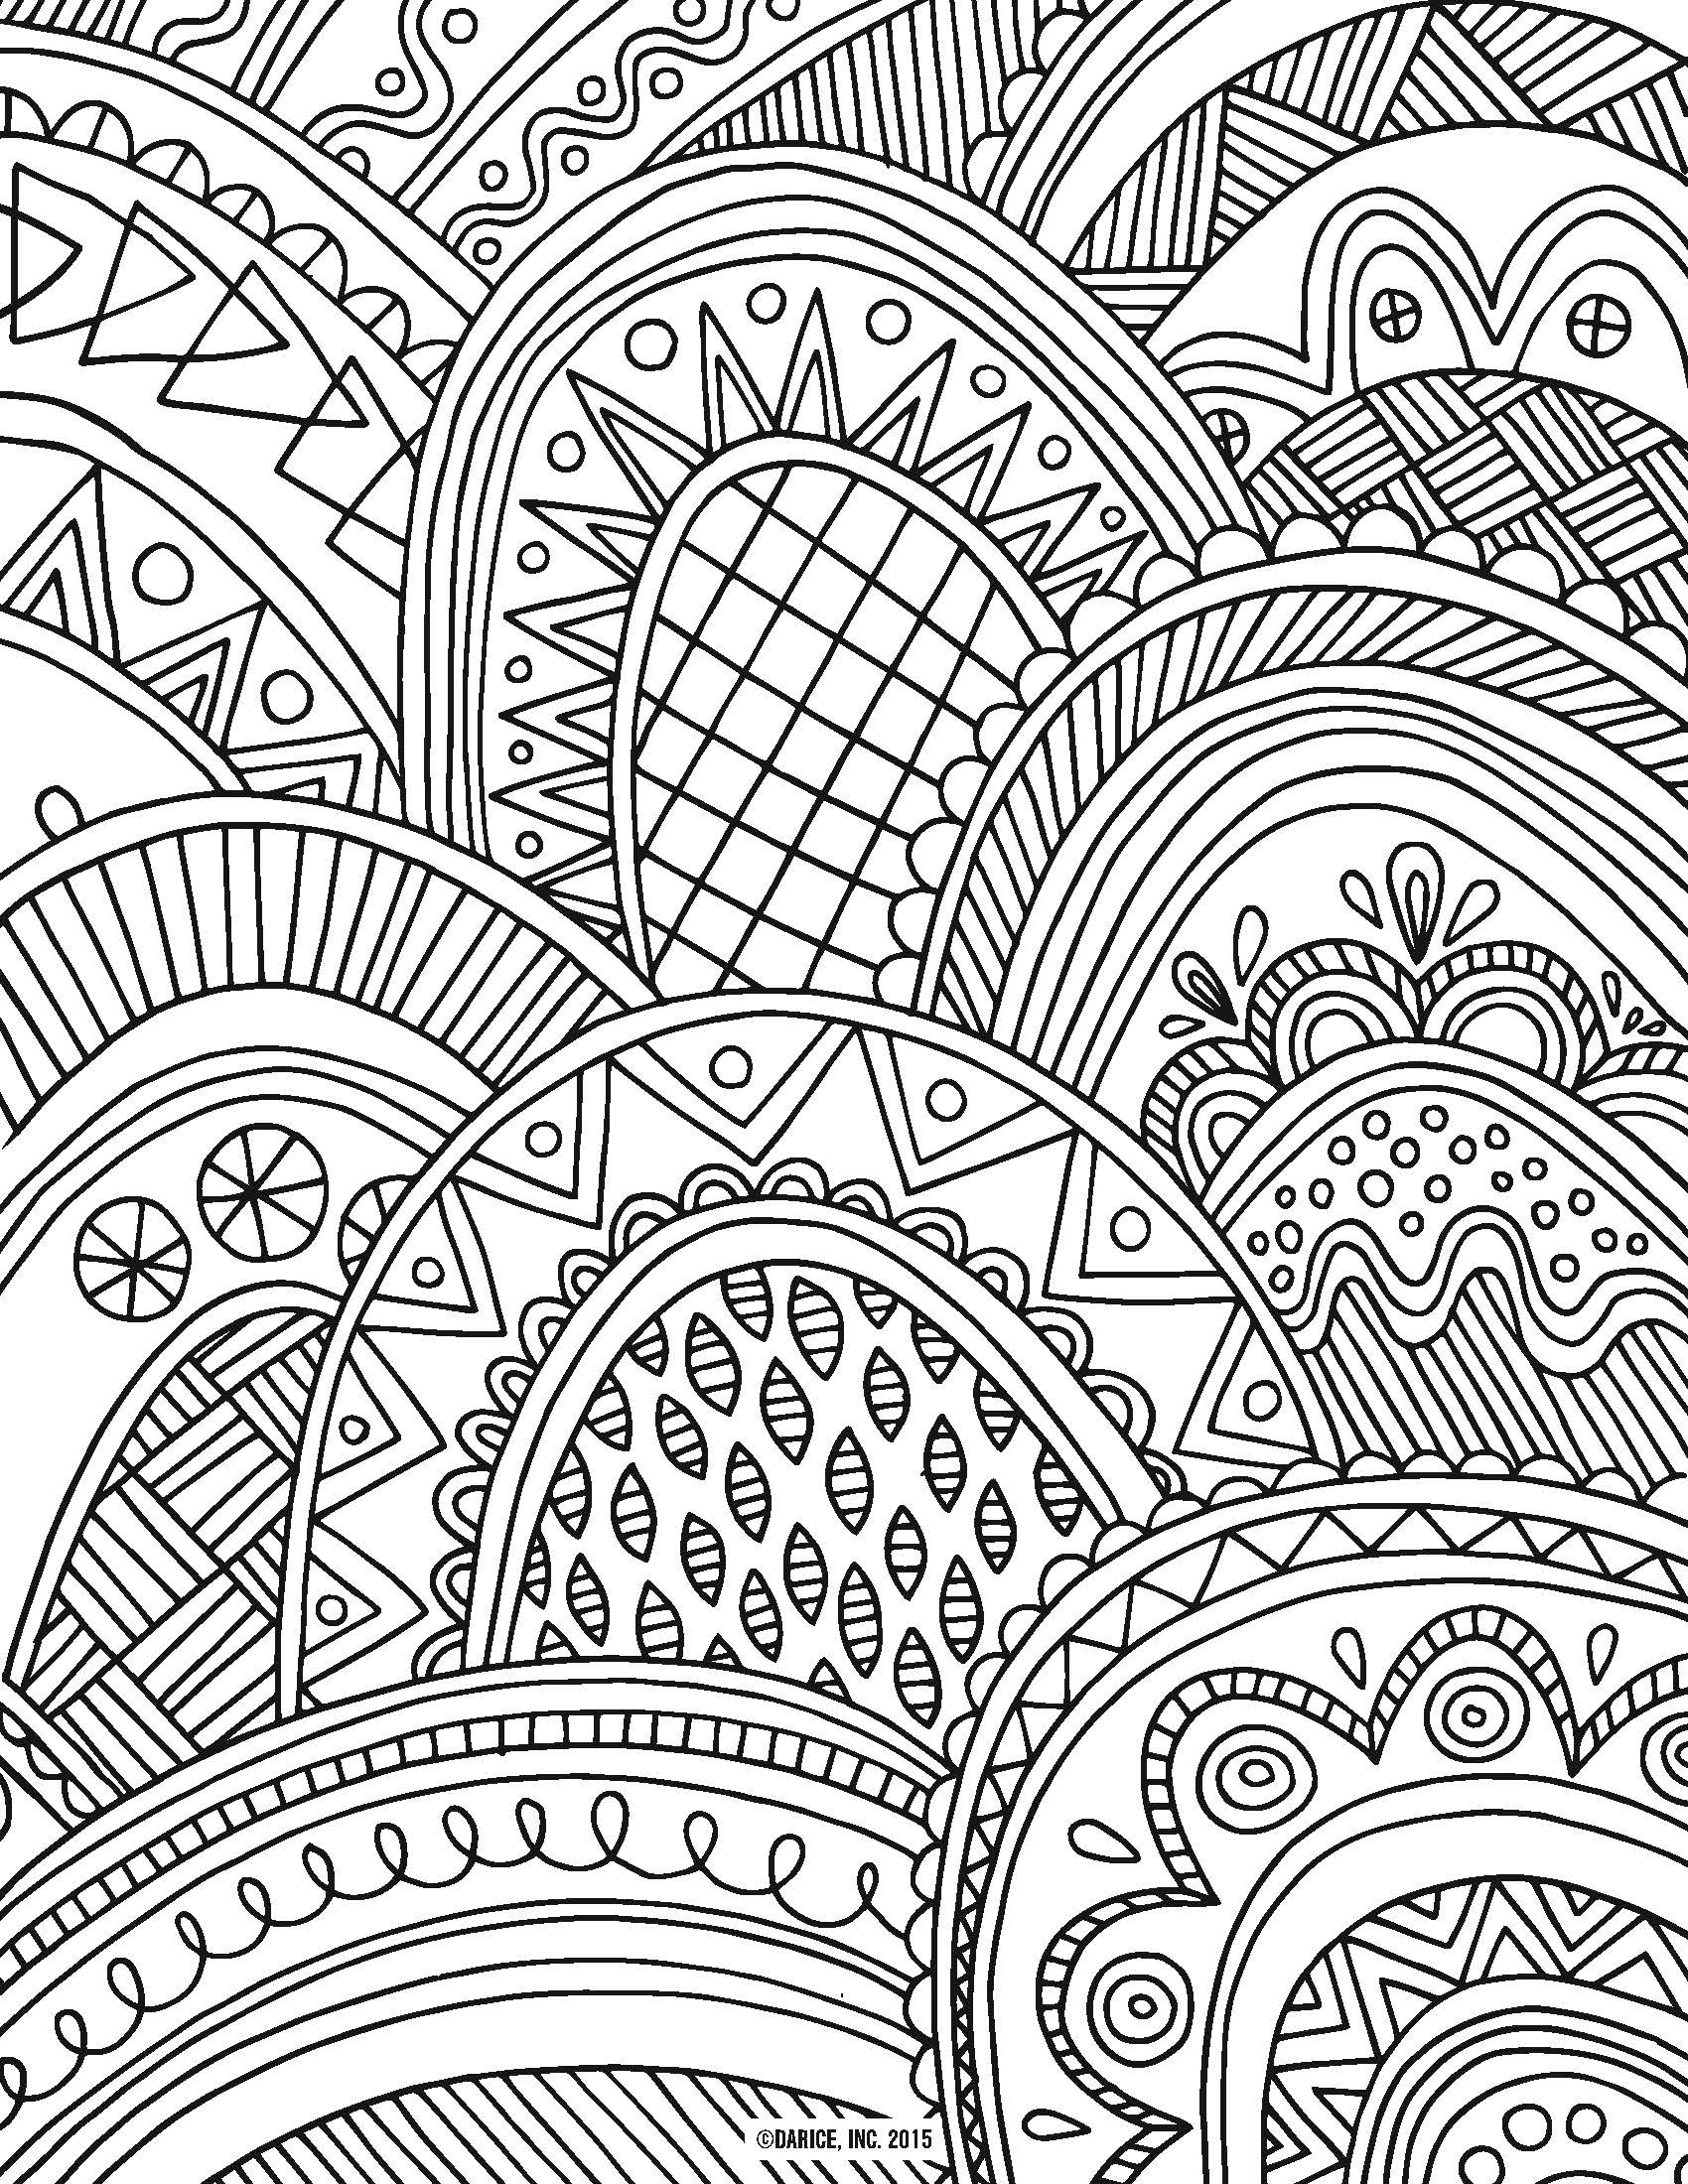 full size coloring sheets carousel coloring pages to see it full size and save sheets coloring size full